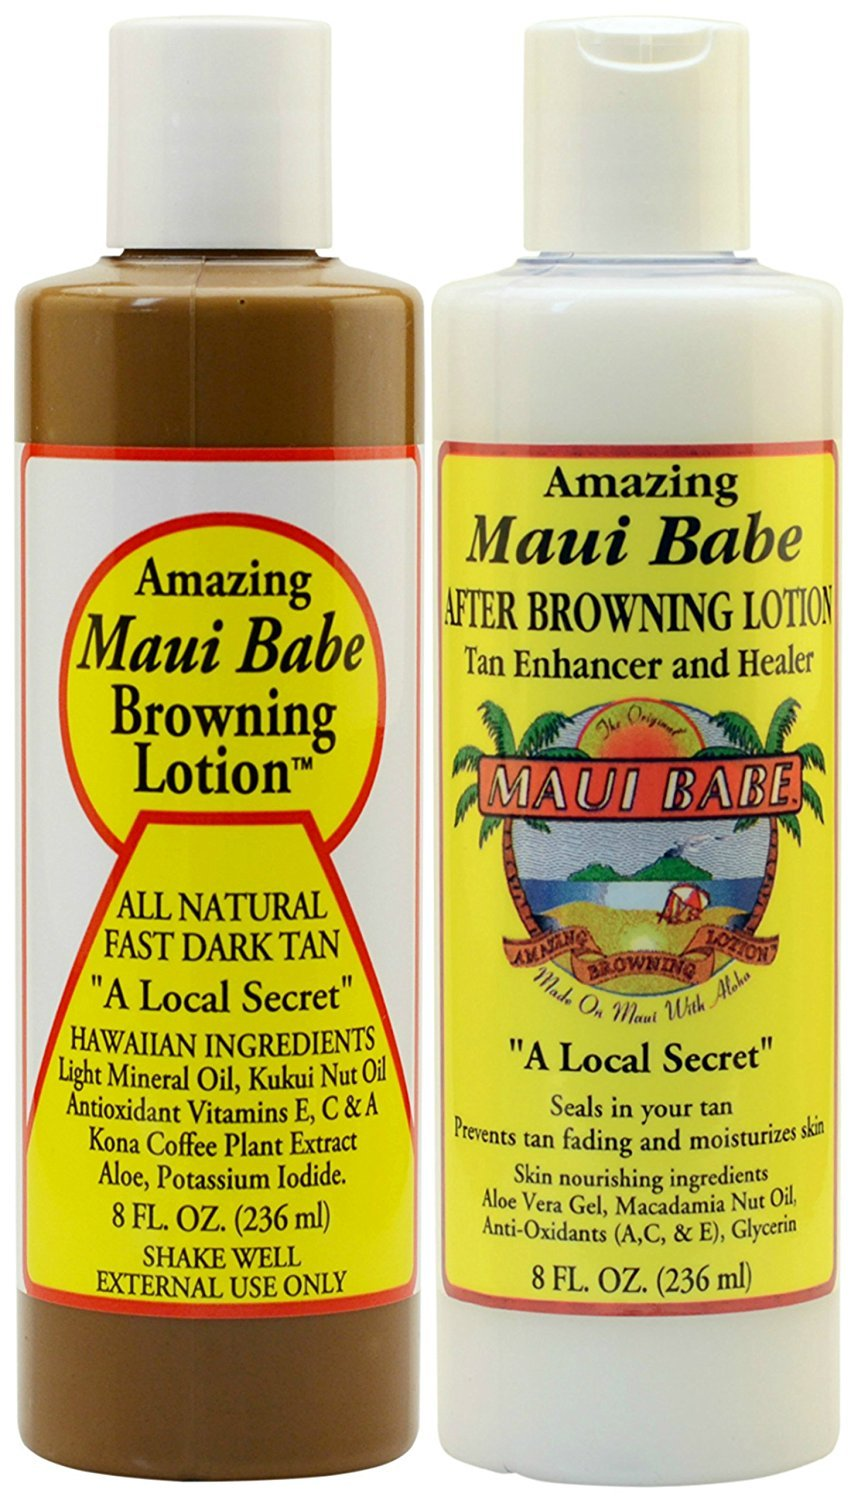 Maui Babe Before and After Sun Pack (Browning Lotion 8 oz, After Browning Lotion 8 oz) MB-BAS